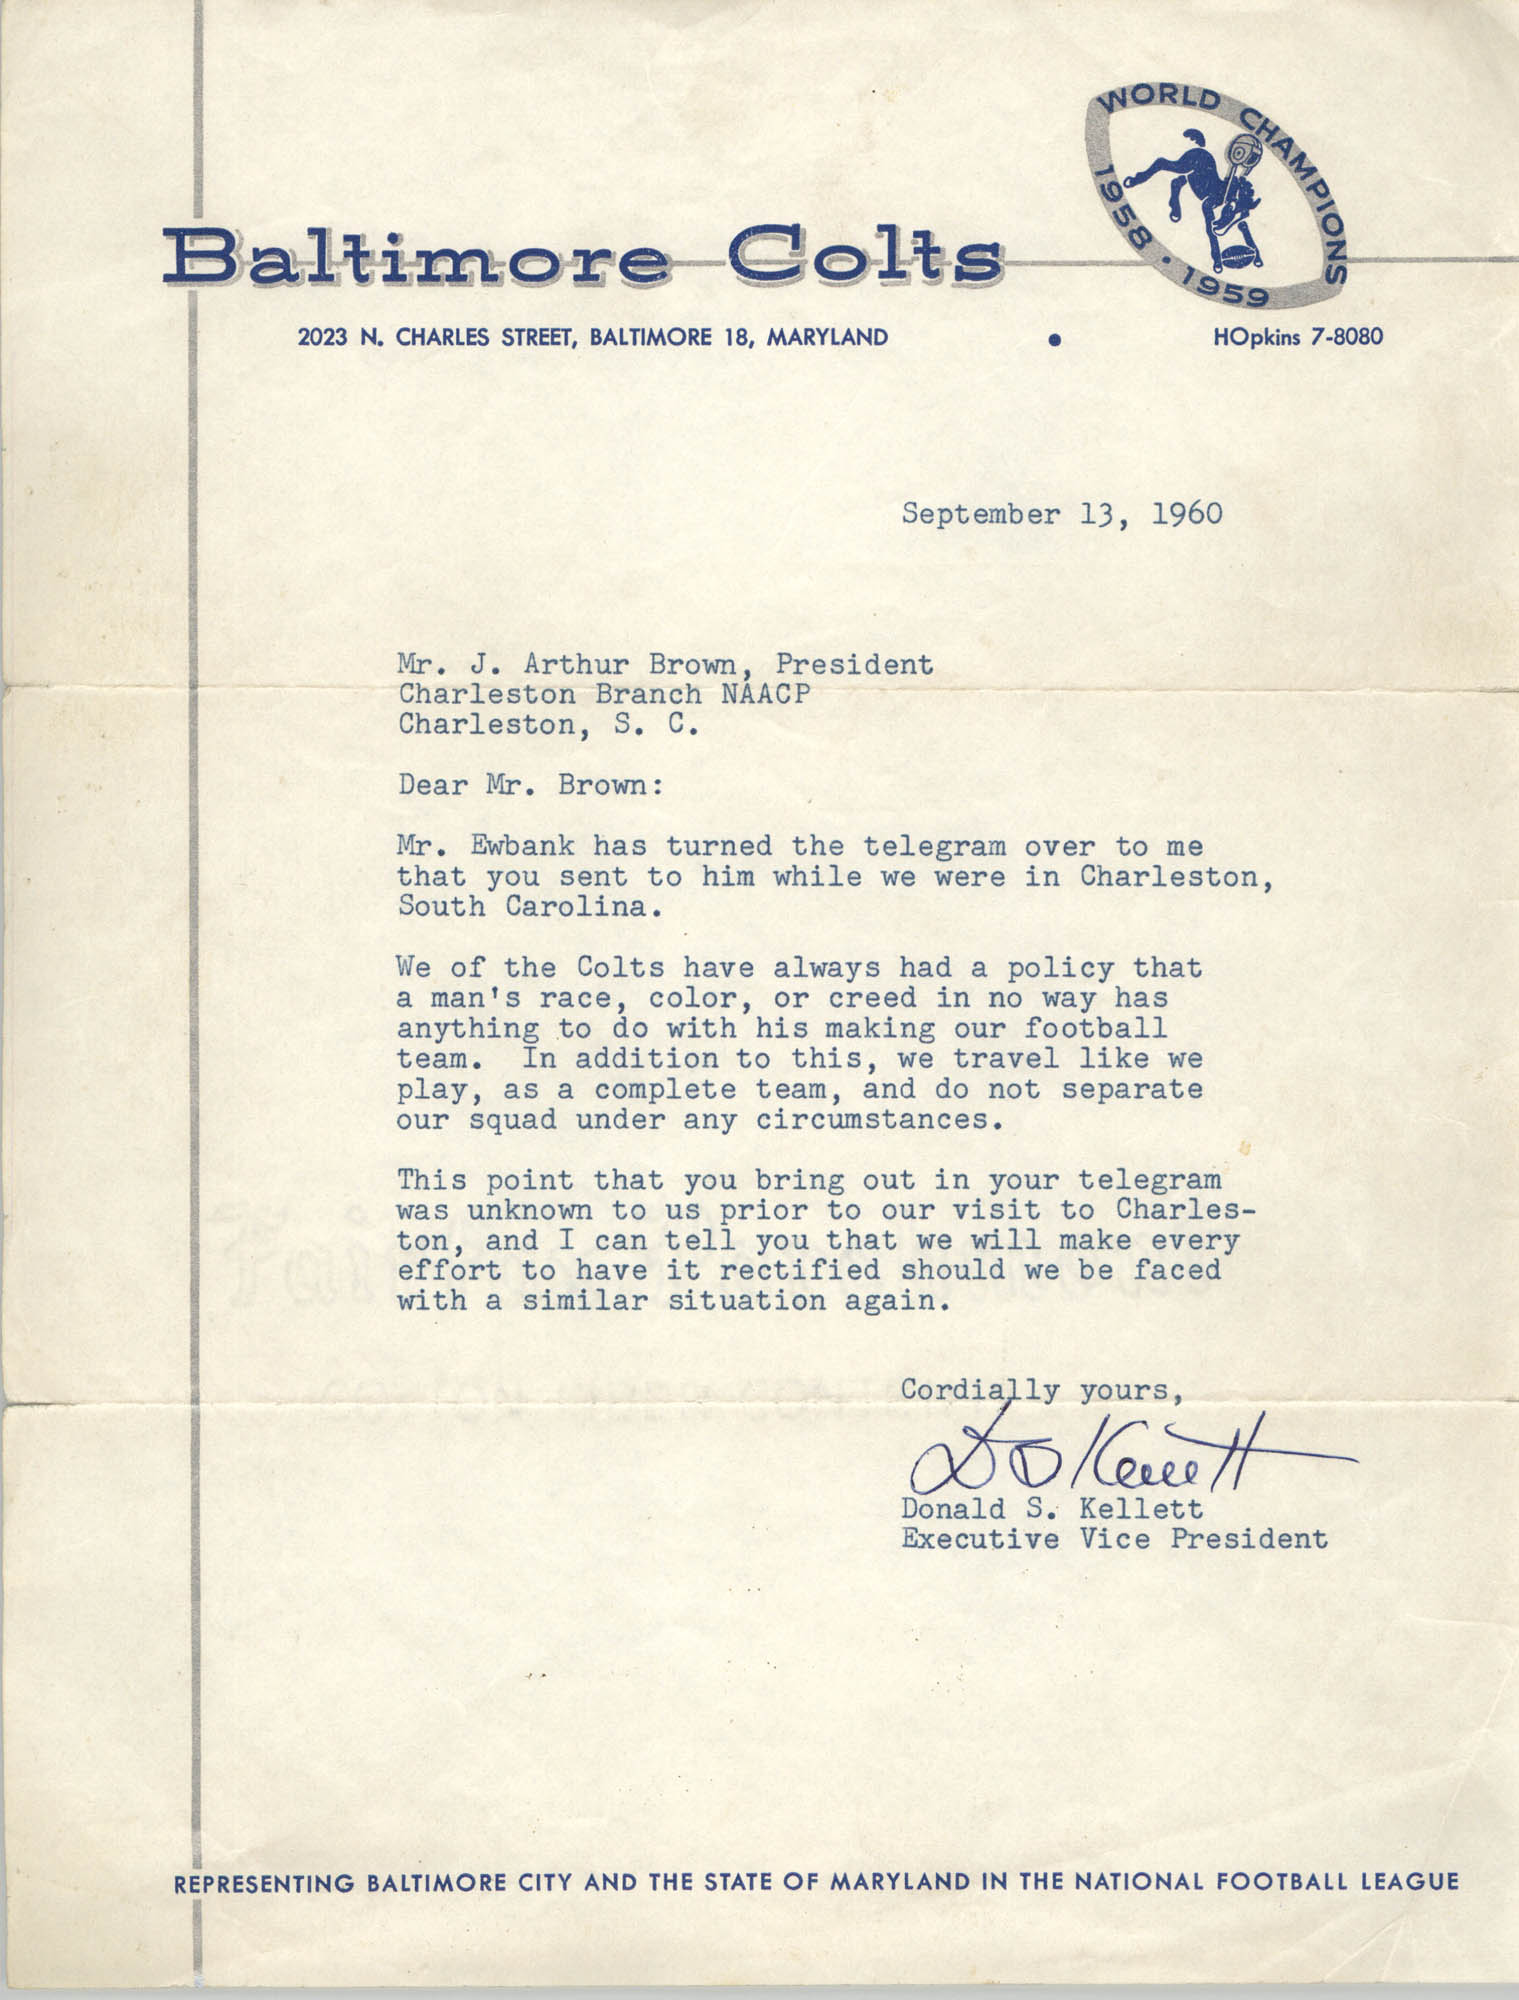 Letter from Donald S. Kellett to J. Arthur Brown, September 13, 1960